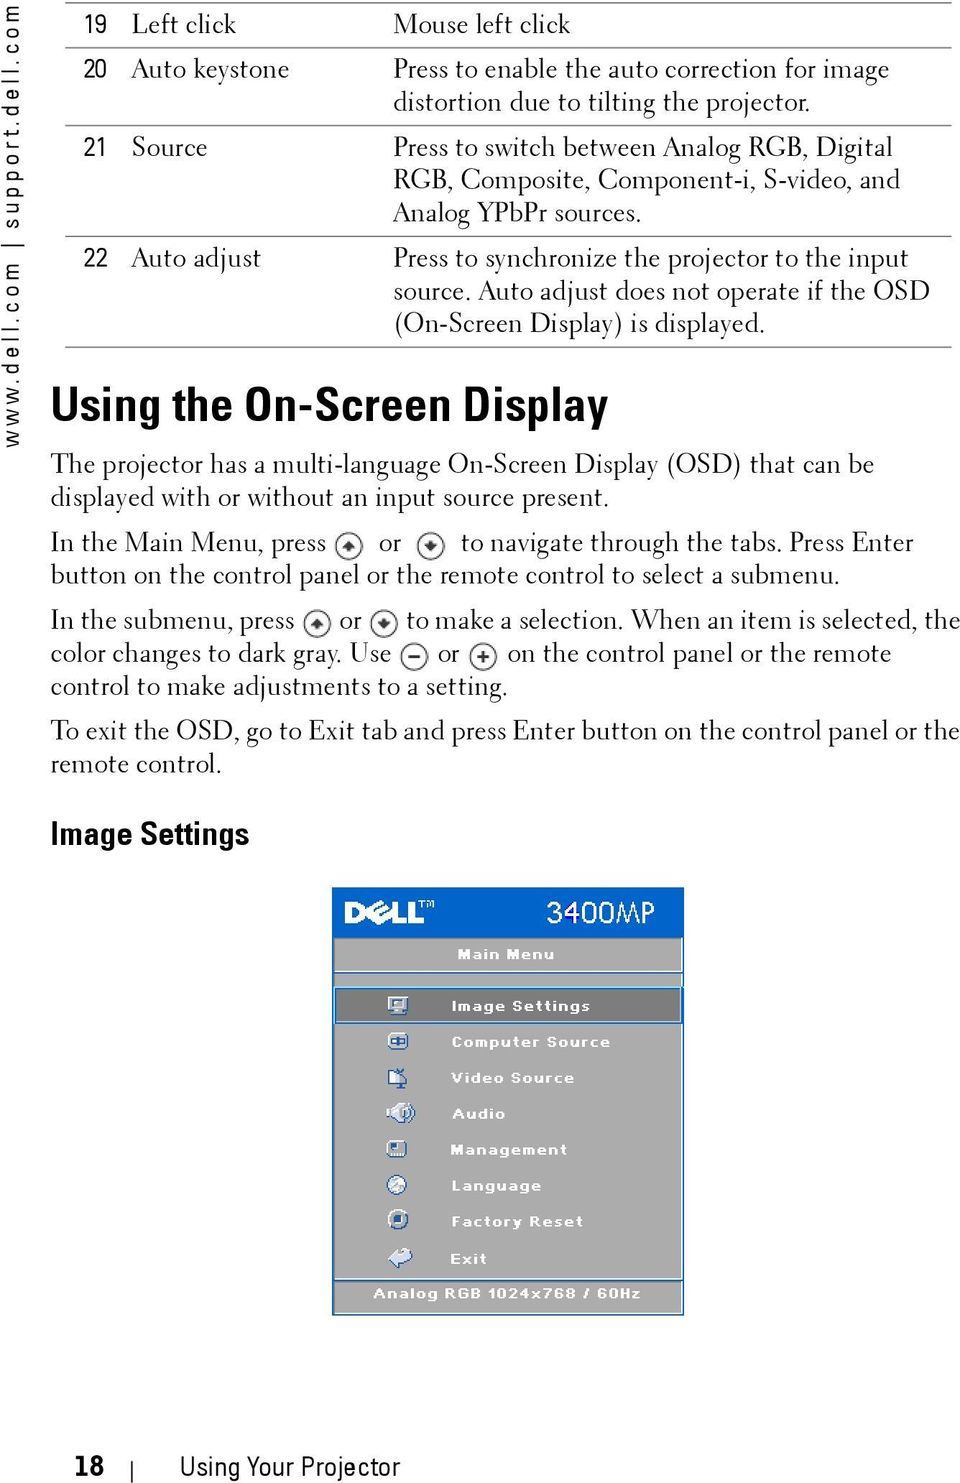 Auto adjust does not operate if the OSD (On-Screen Display) is displayed.